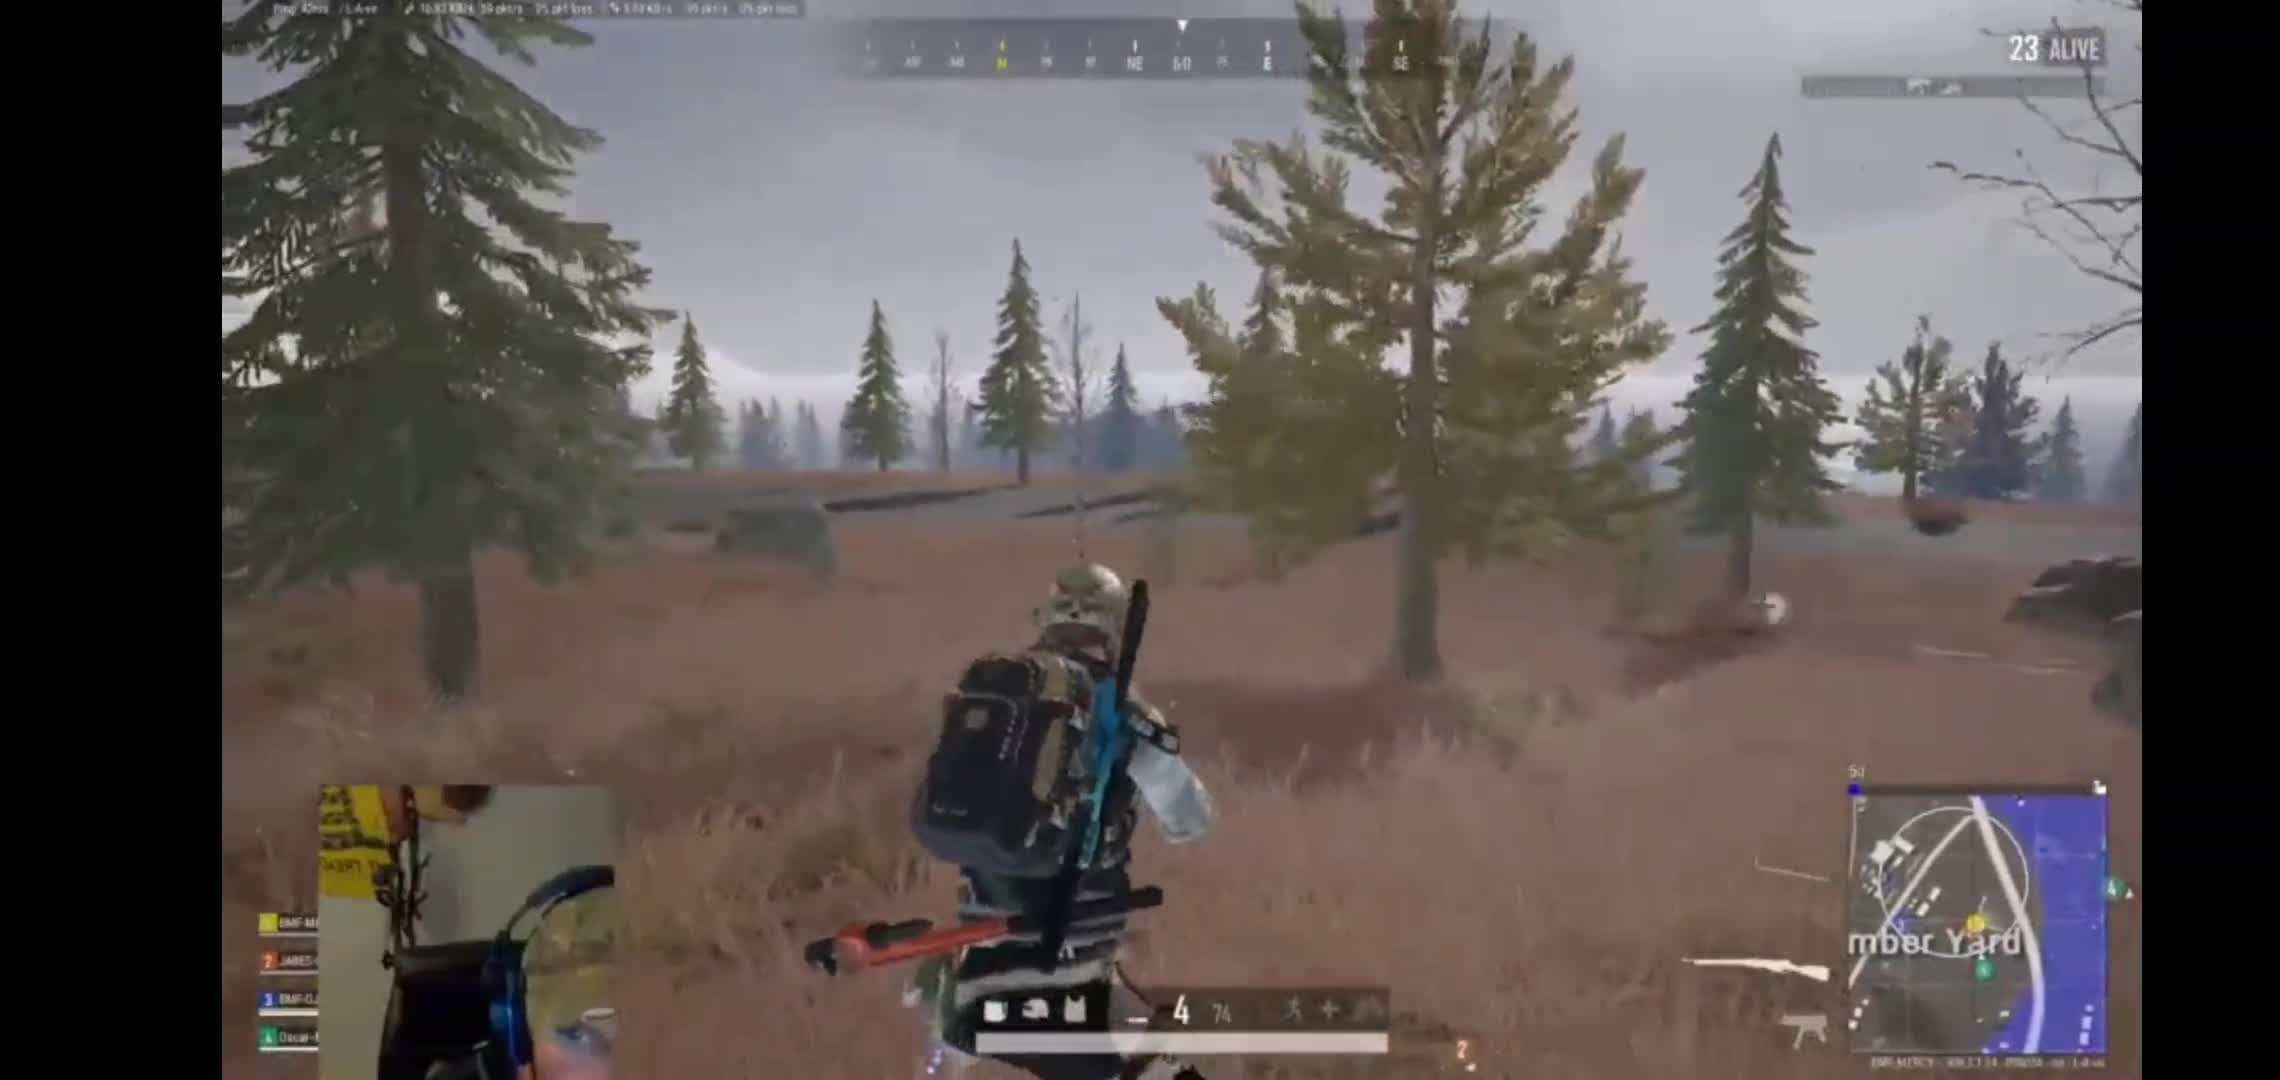 PUBG: General - Highlights From the the stream earlier back to back head shots with the Mosin!!  video cover image 0